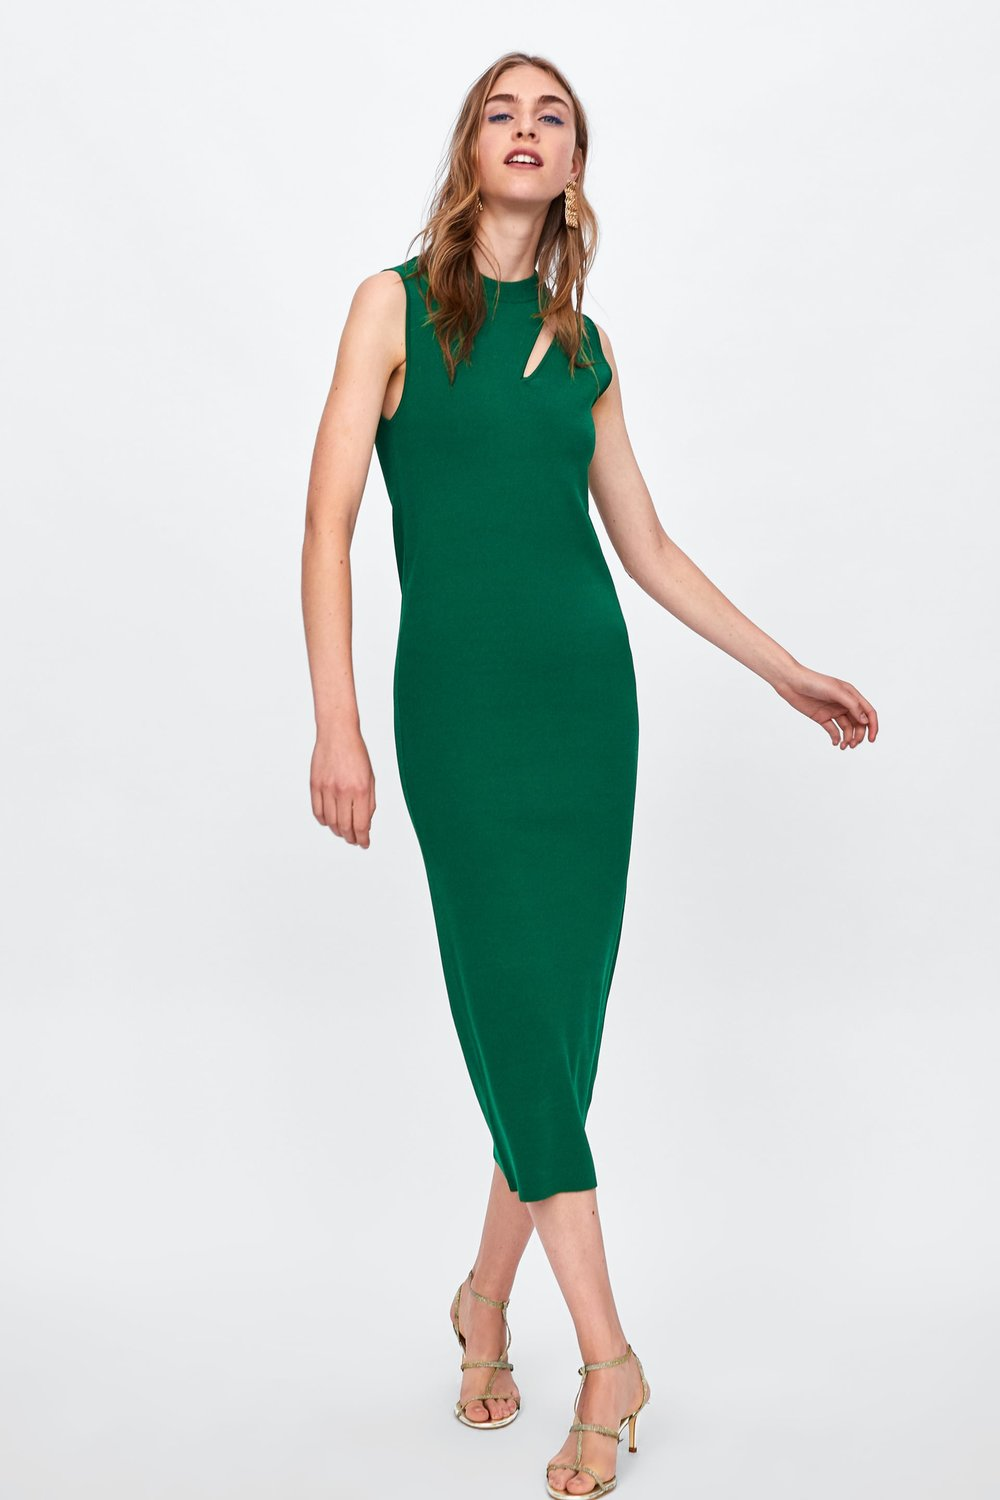 https://www.zara.com/ca/en/cut-out-knit-dress-p06873114.html?v1=7435544&v2=1074540